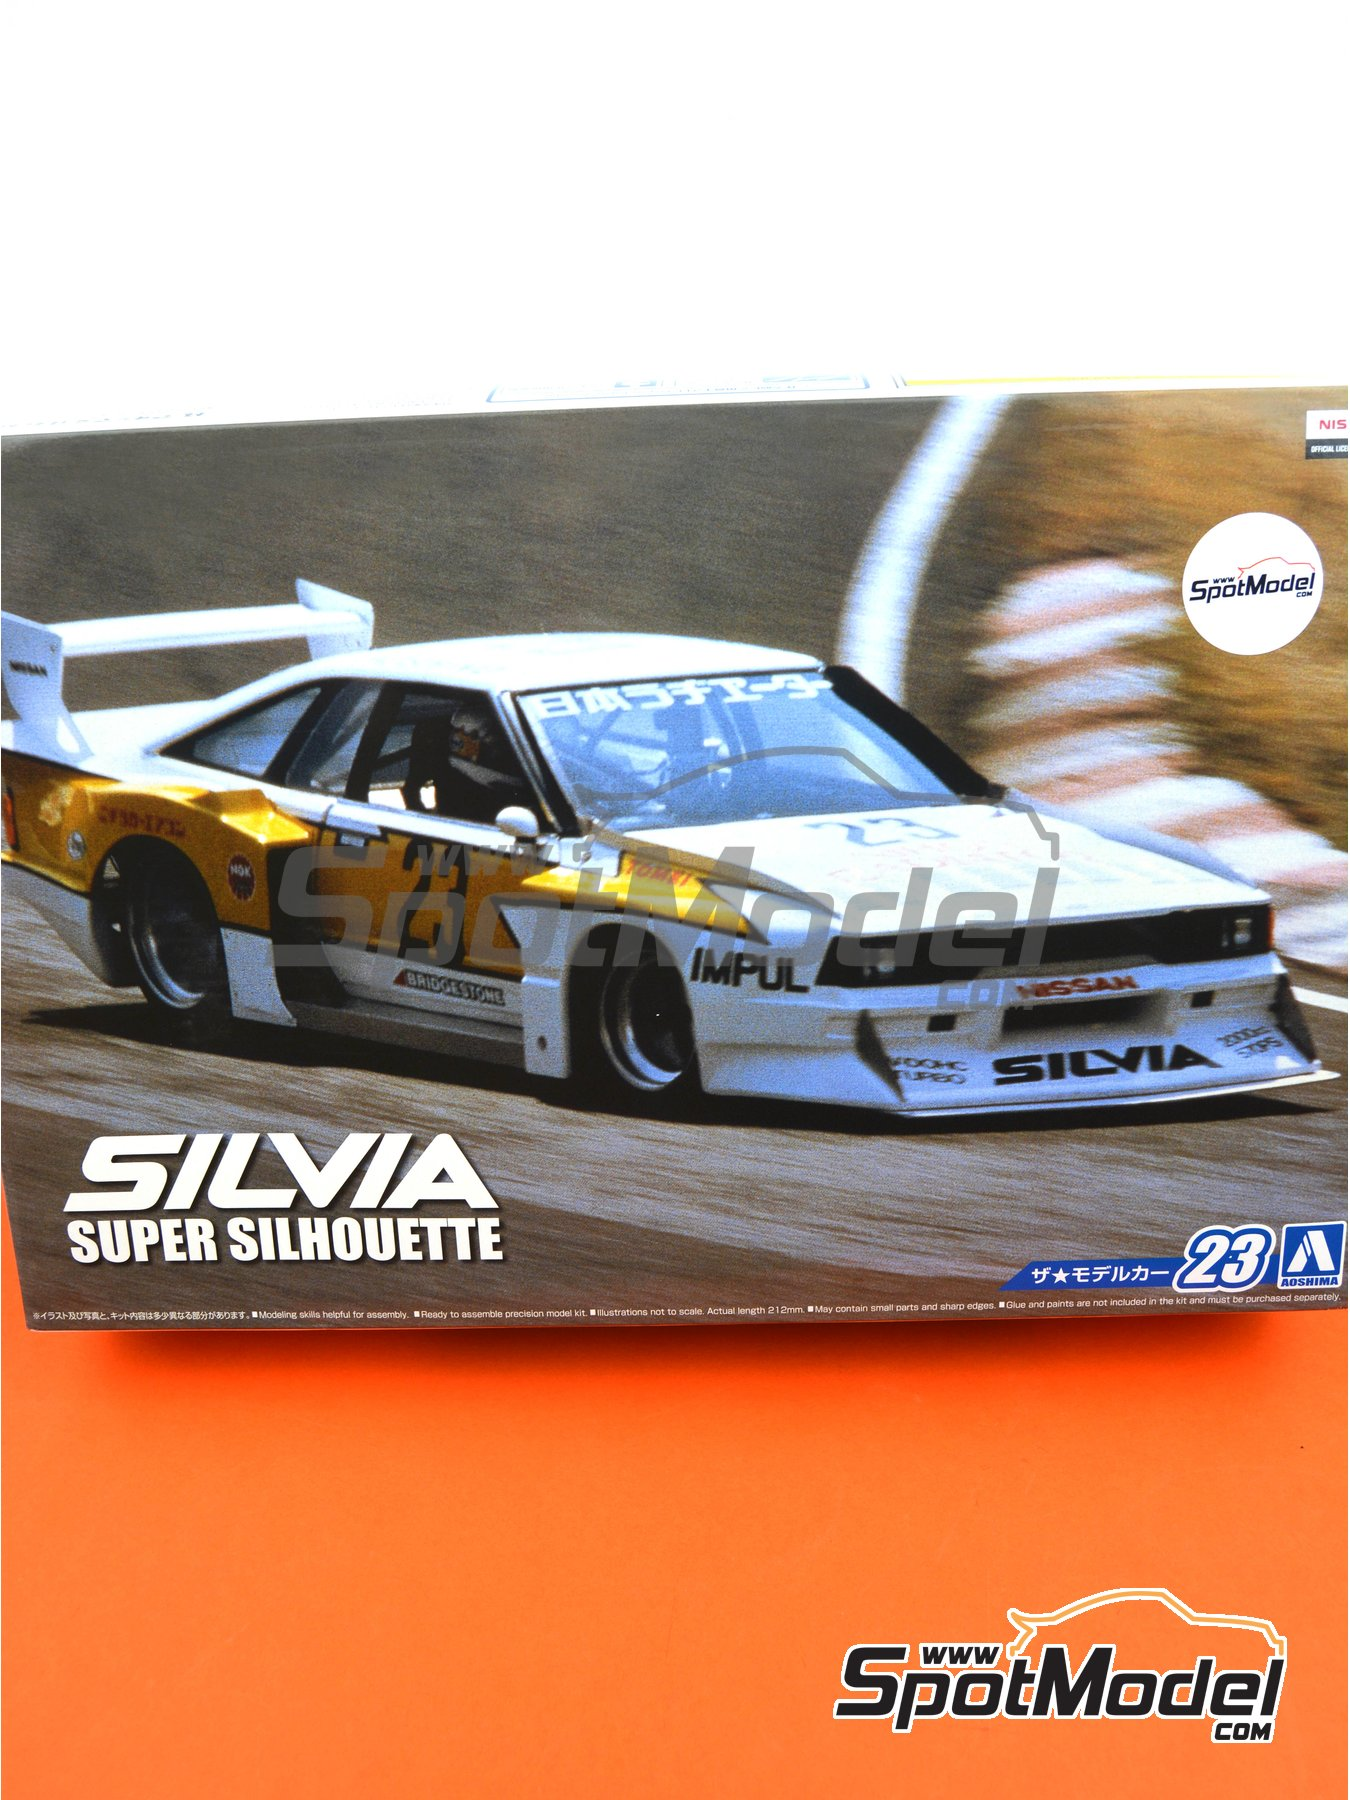 Nissan KS110 Silvia - Super Silhouette Series 1982 | Model car kit in 1/24 scale manufactured by Aoshima (ref. 4905083052303) image